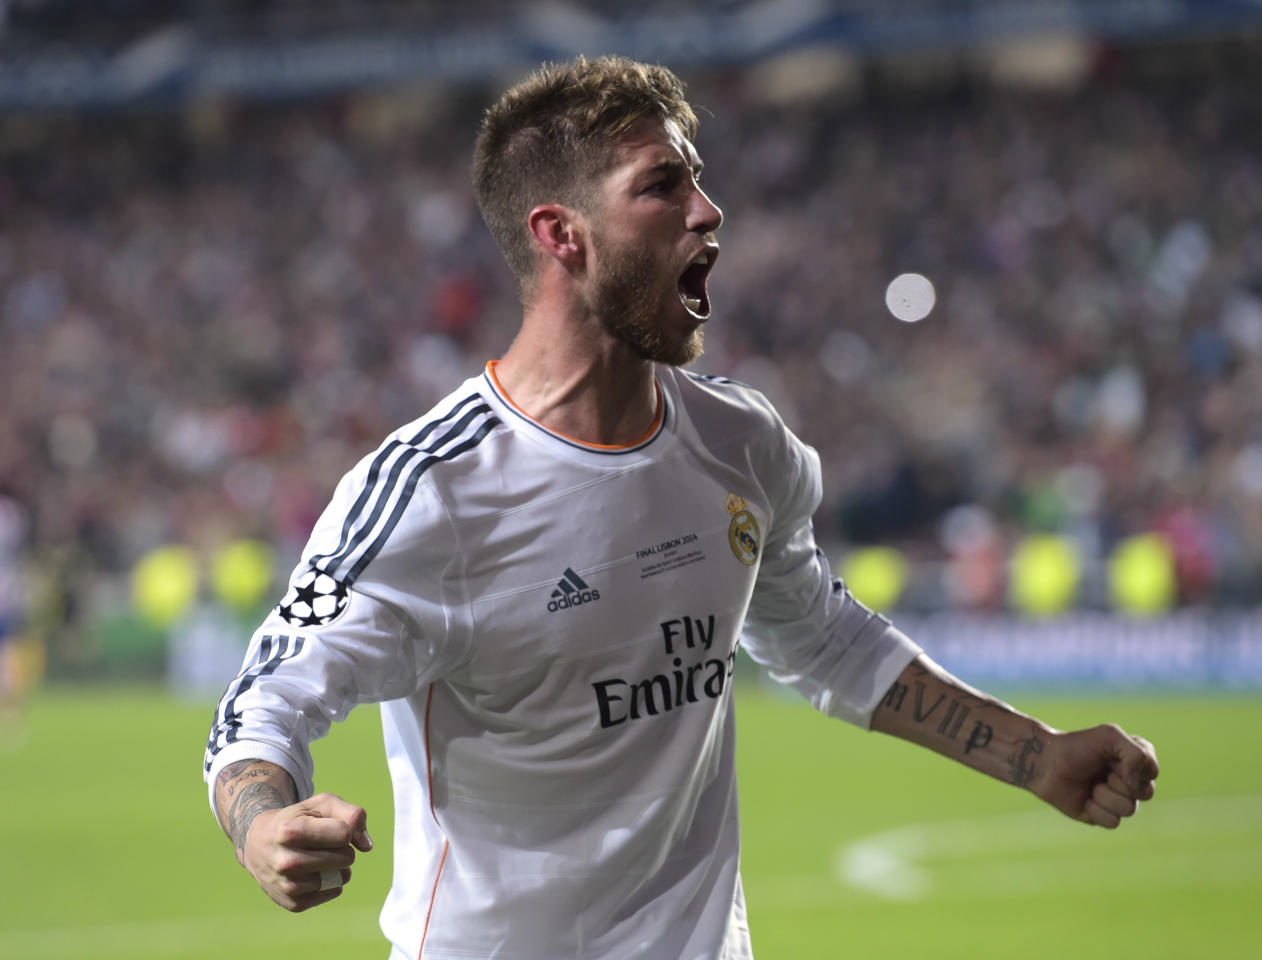 Real's Sergio Ramos, gestures, after scoring his side's first goal , during the Champions League final soccer match between Atletico Madrid and Real Madrid, at the Luz stadium, in Lisbon, Portugal, Saturday, May 24, 2014. (AP Photo/Manu Fernandez)